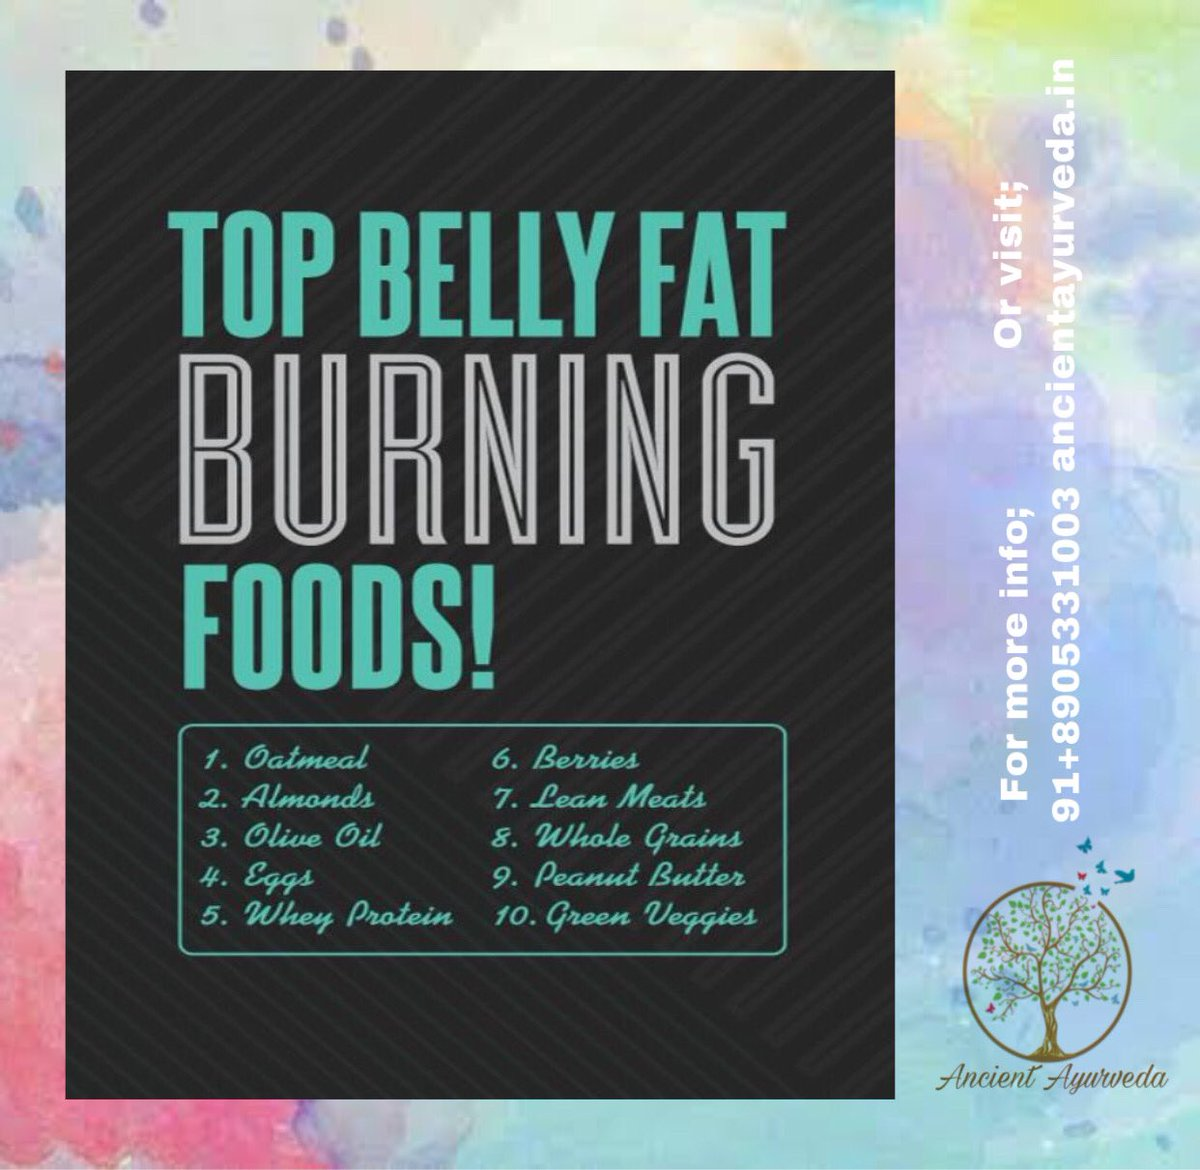 Top Belly Fat Burning Foods! For more info;91+8905331003 Or visit;  . . . #Ayurveda #ayurvedaday #naturalmedicine #weightlossjourney #goodfood #goodlifegoodvibe #behealthy #keepsupporting #StaySafe #stayfit #like4likes #follow4follow #dailypost #dailygoals